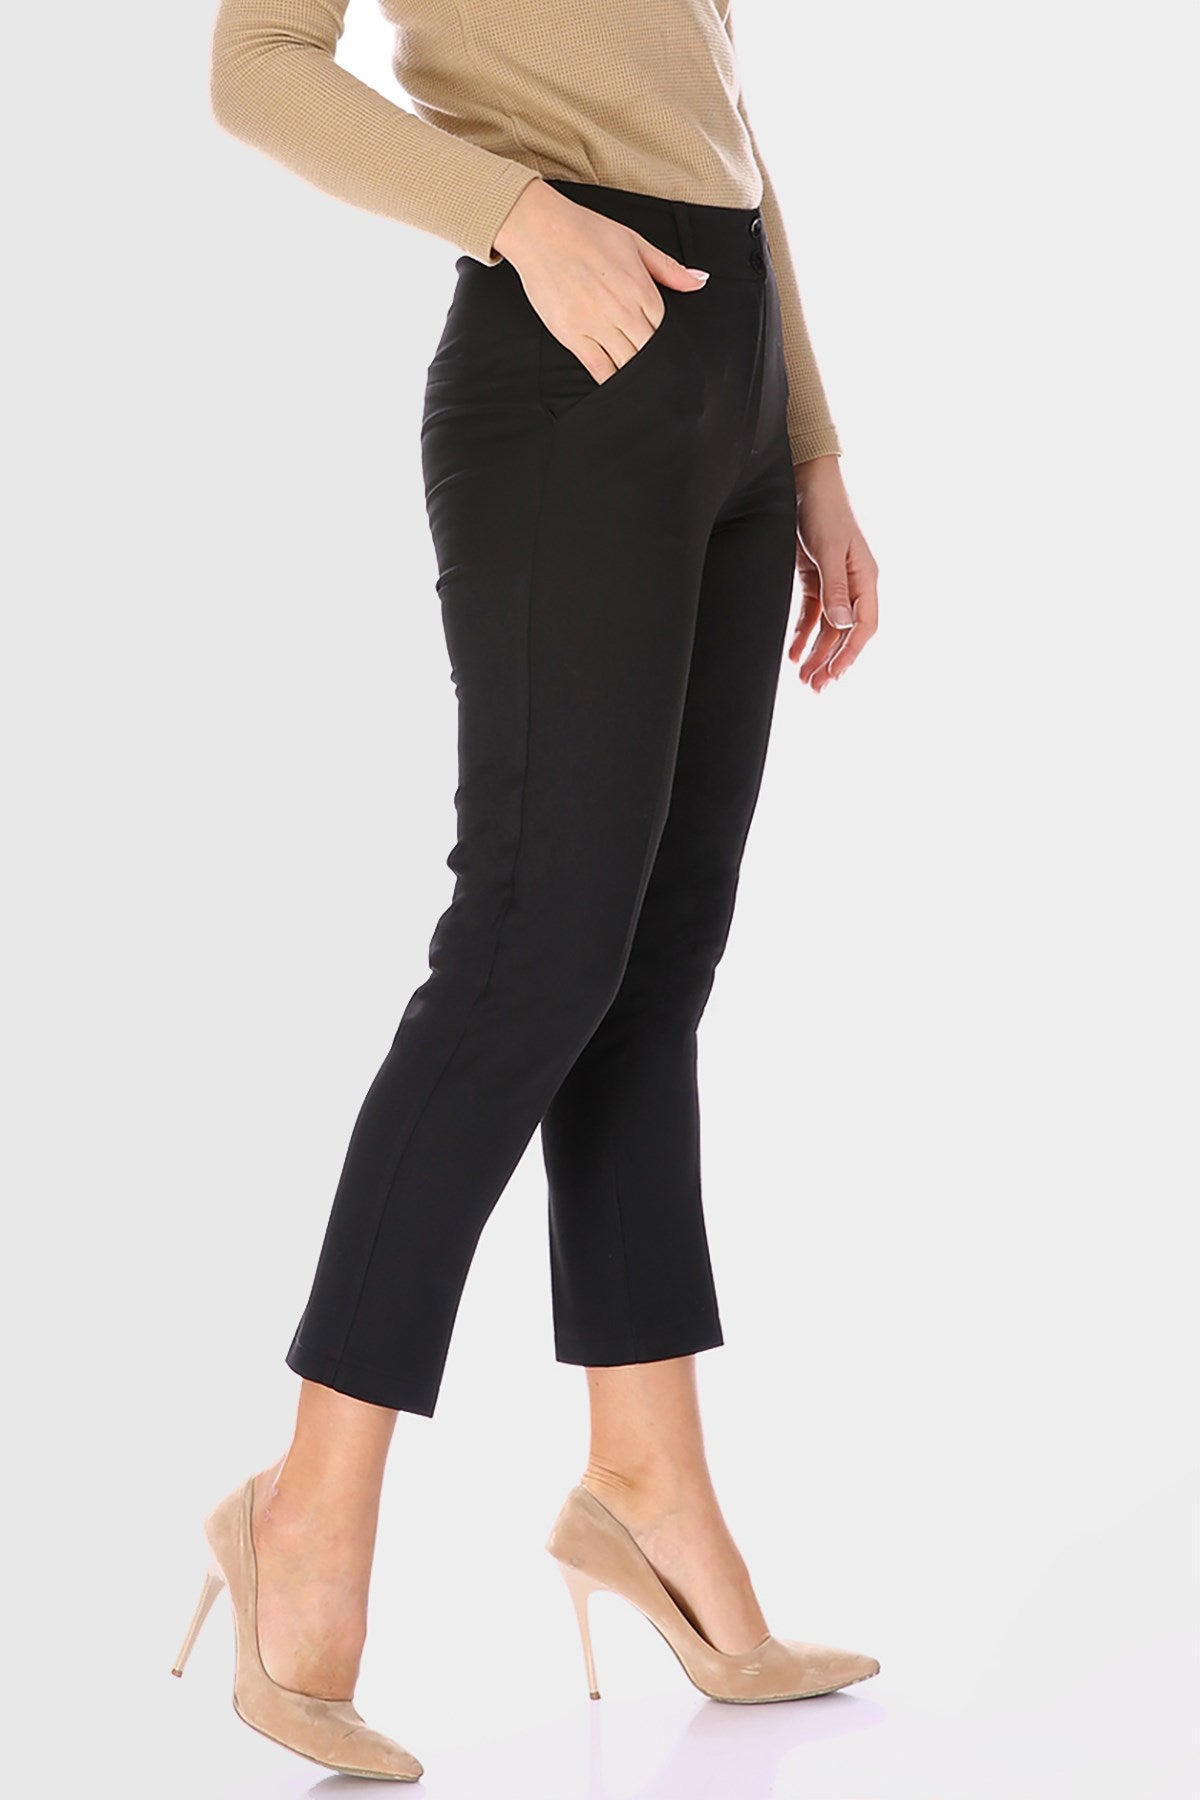 Women's Basic Polyviscose Ankle Pants